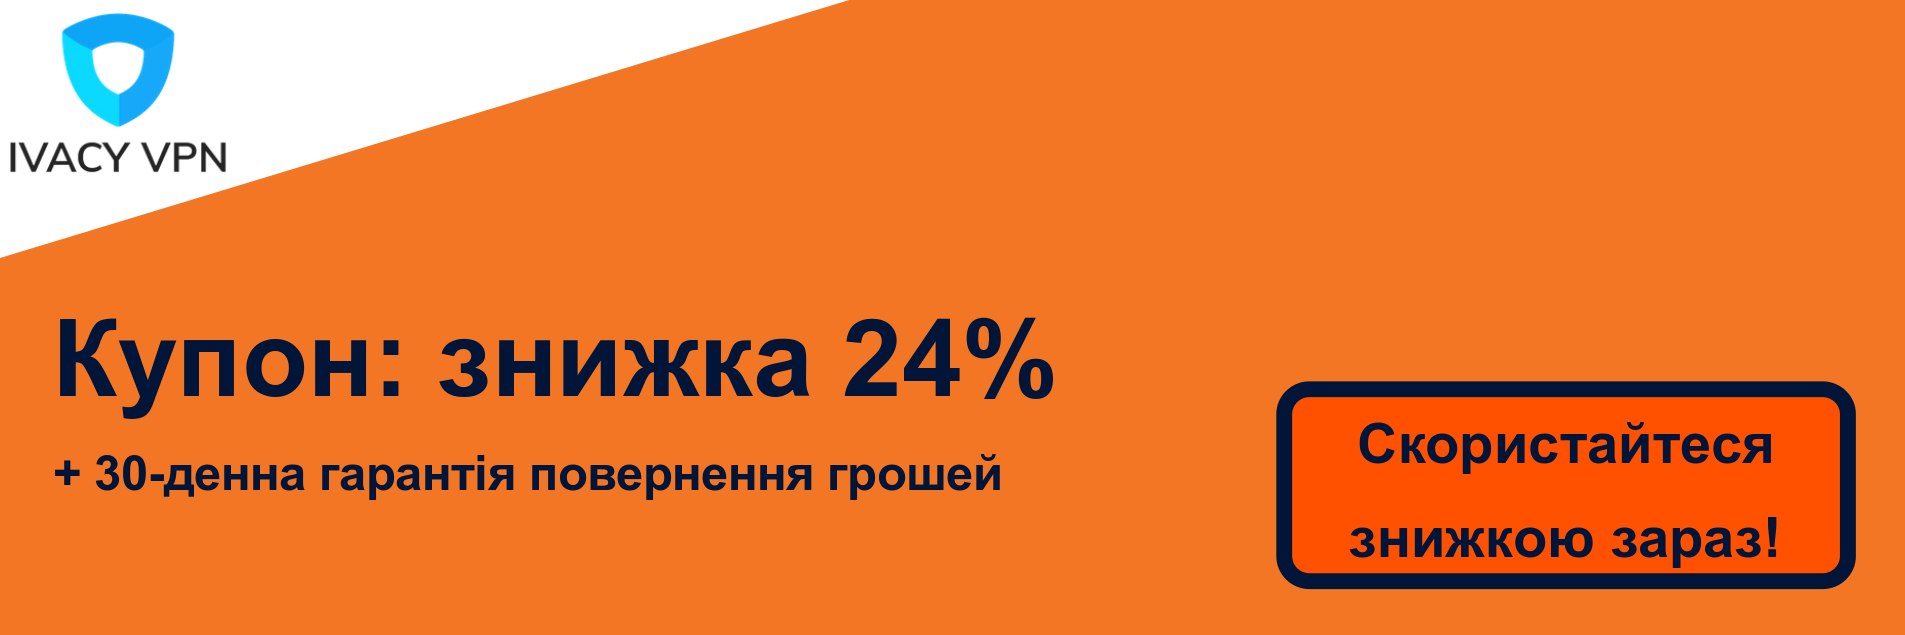 Ivacy VPN купона банер - 24% знижка